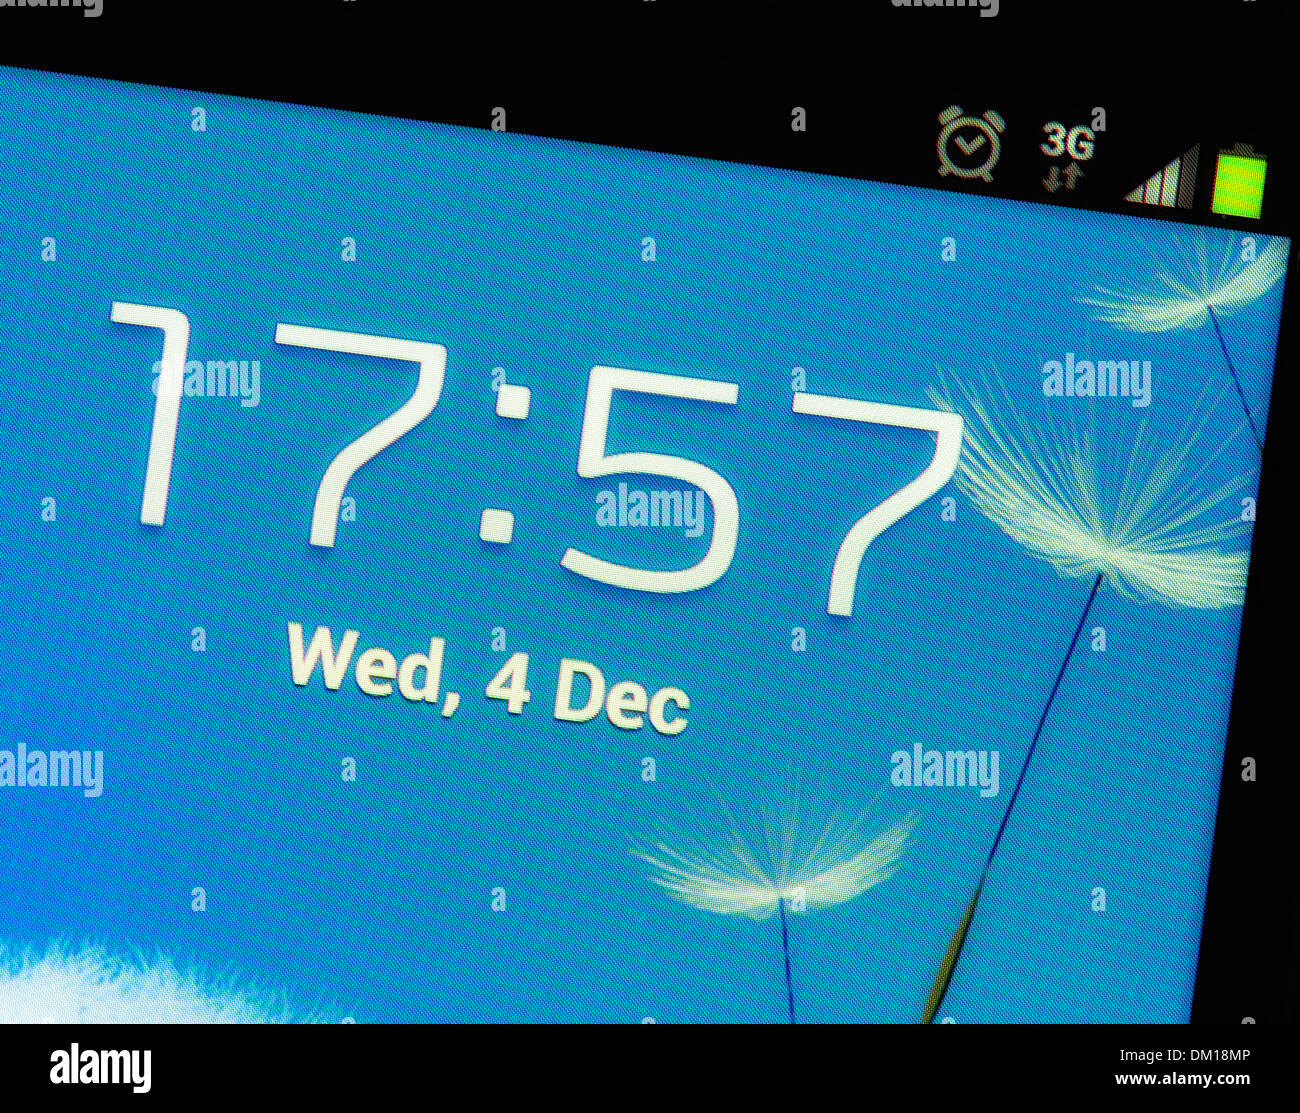 A mobile phone touch screen showing time date 3g and signal strength Samsung Galaxy range - Stock Image